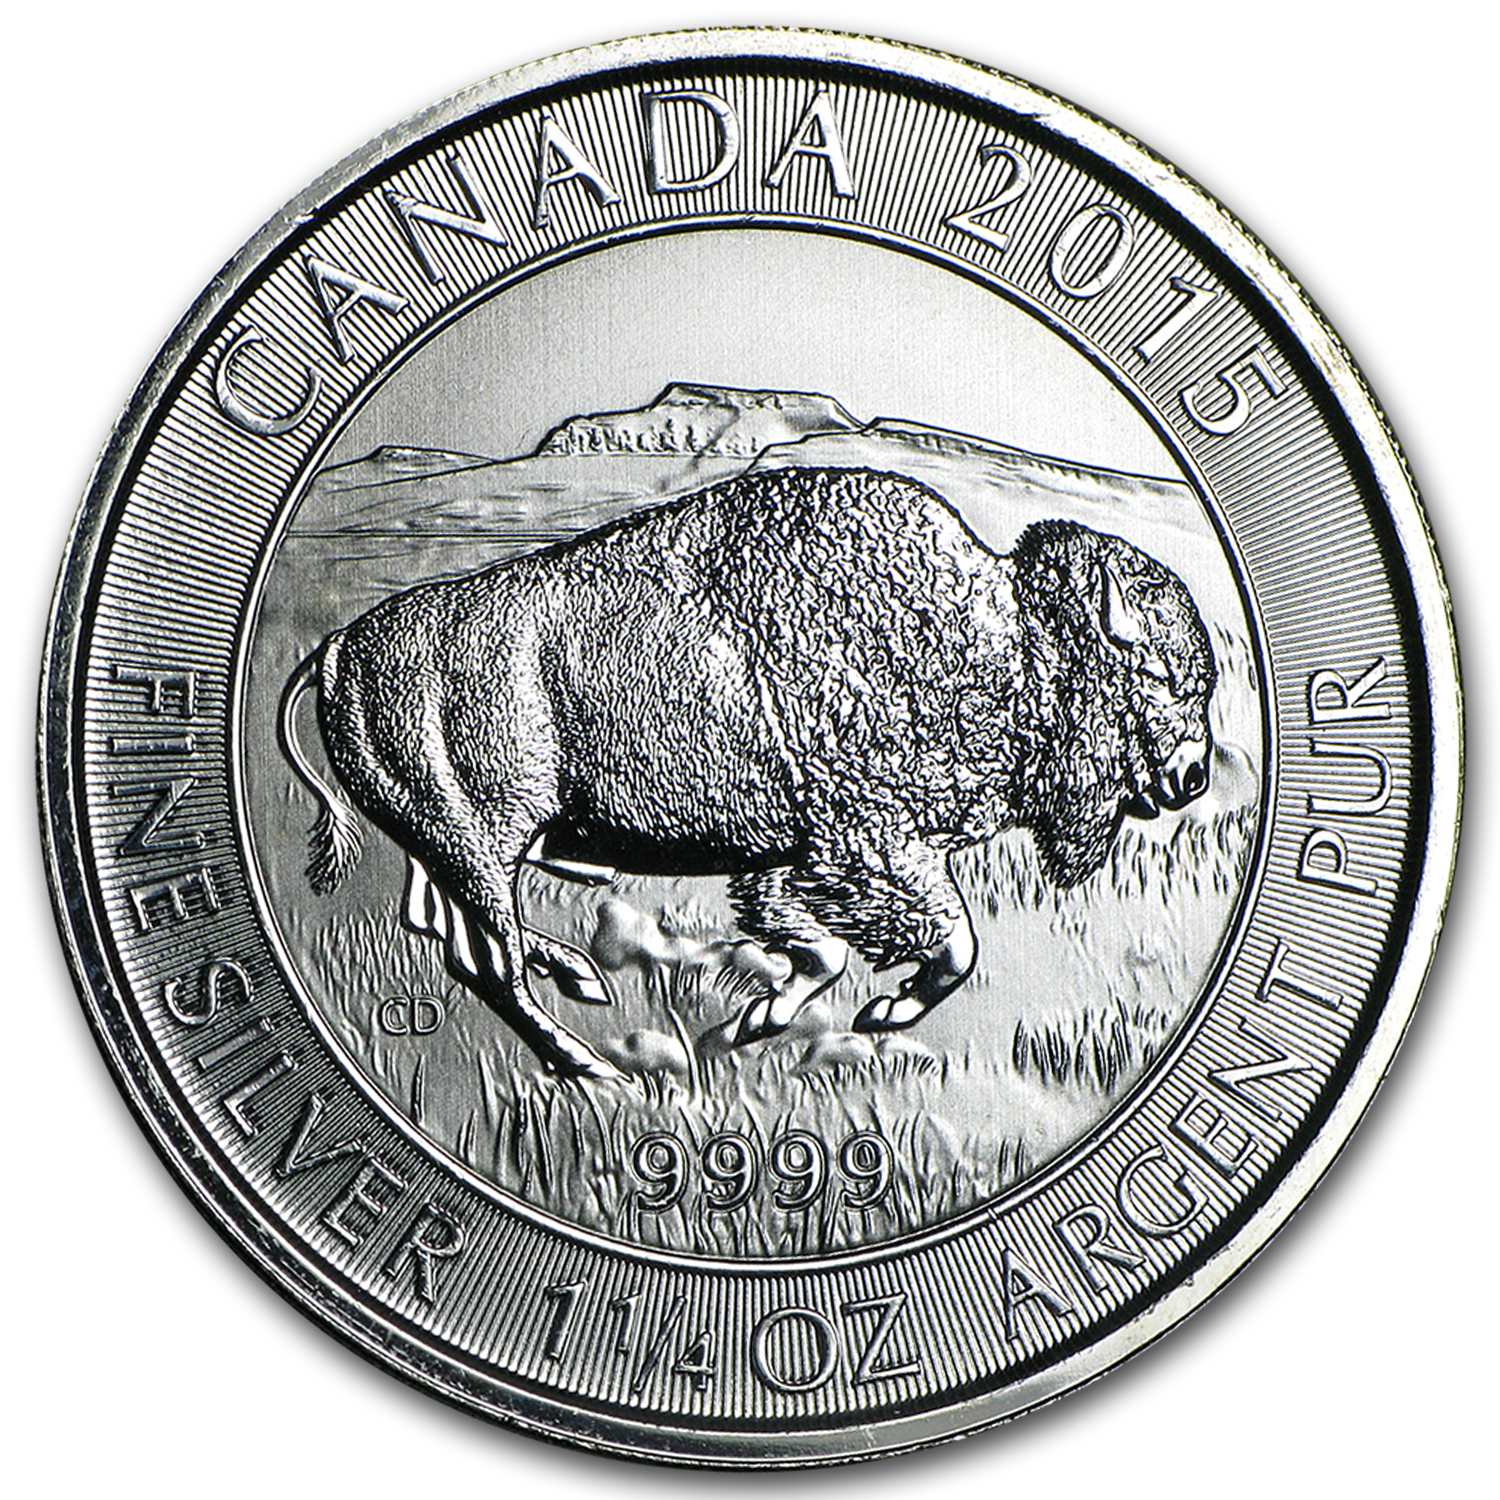 2015 Canada 1.25 oz Silver $8 Bison BU (Damaged)